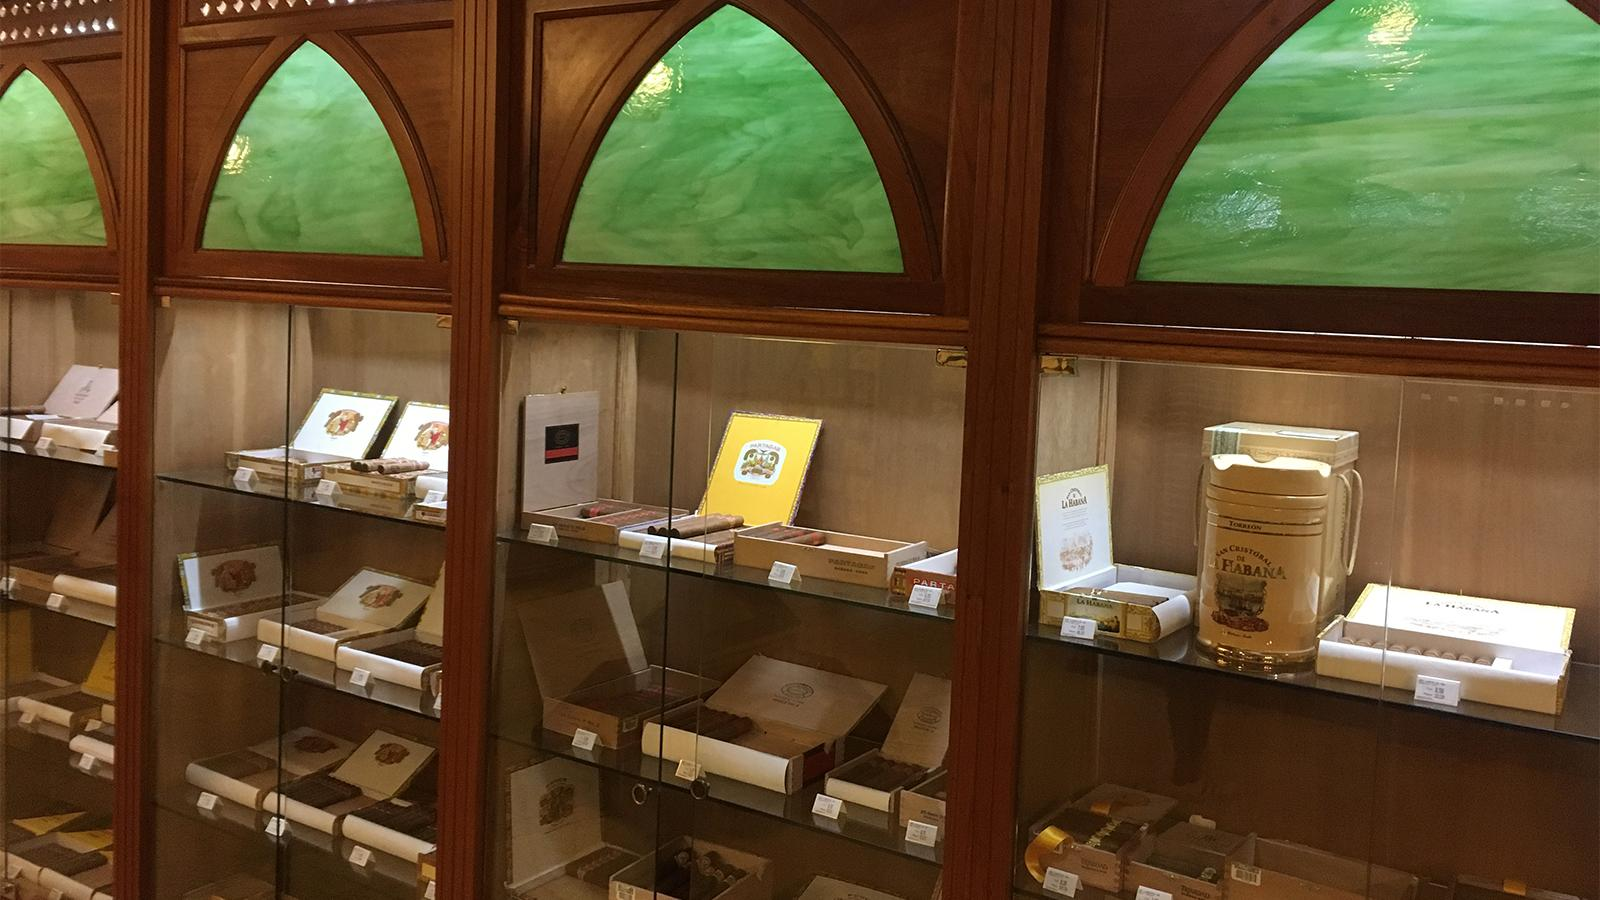 Humidor inside the La Casa del Habano at the Habana Libre Hotel.